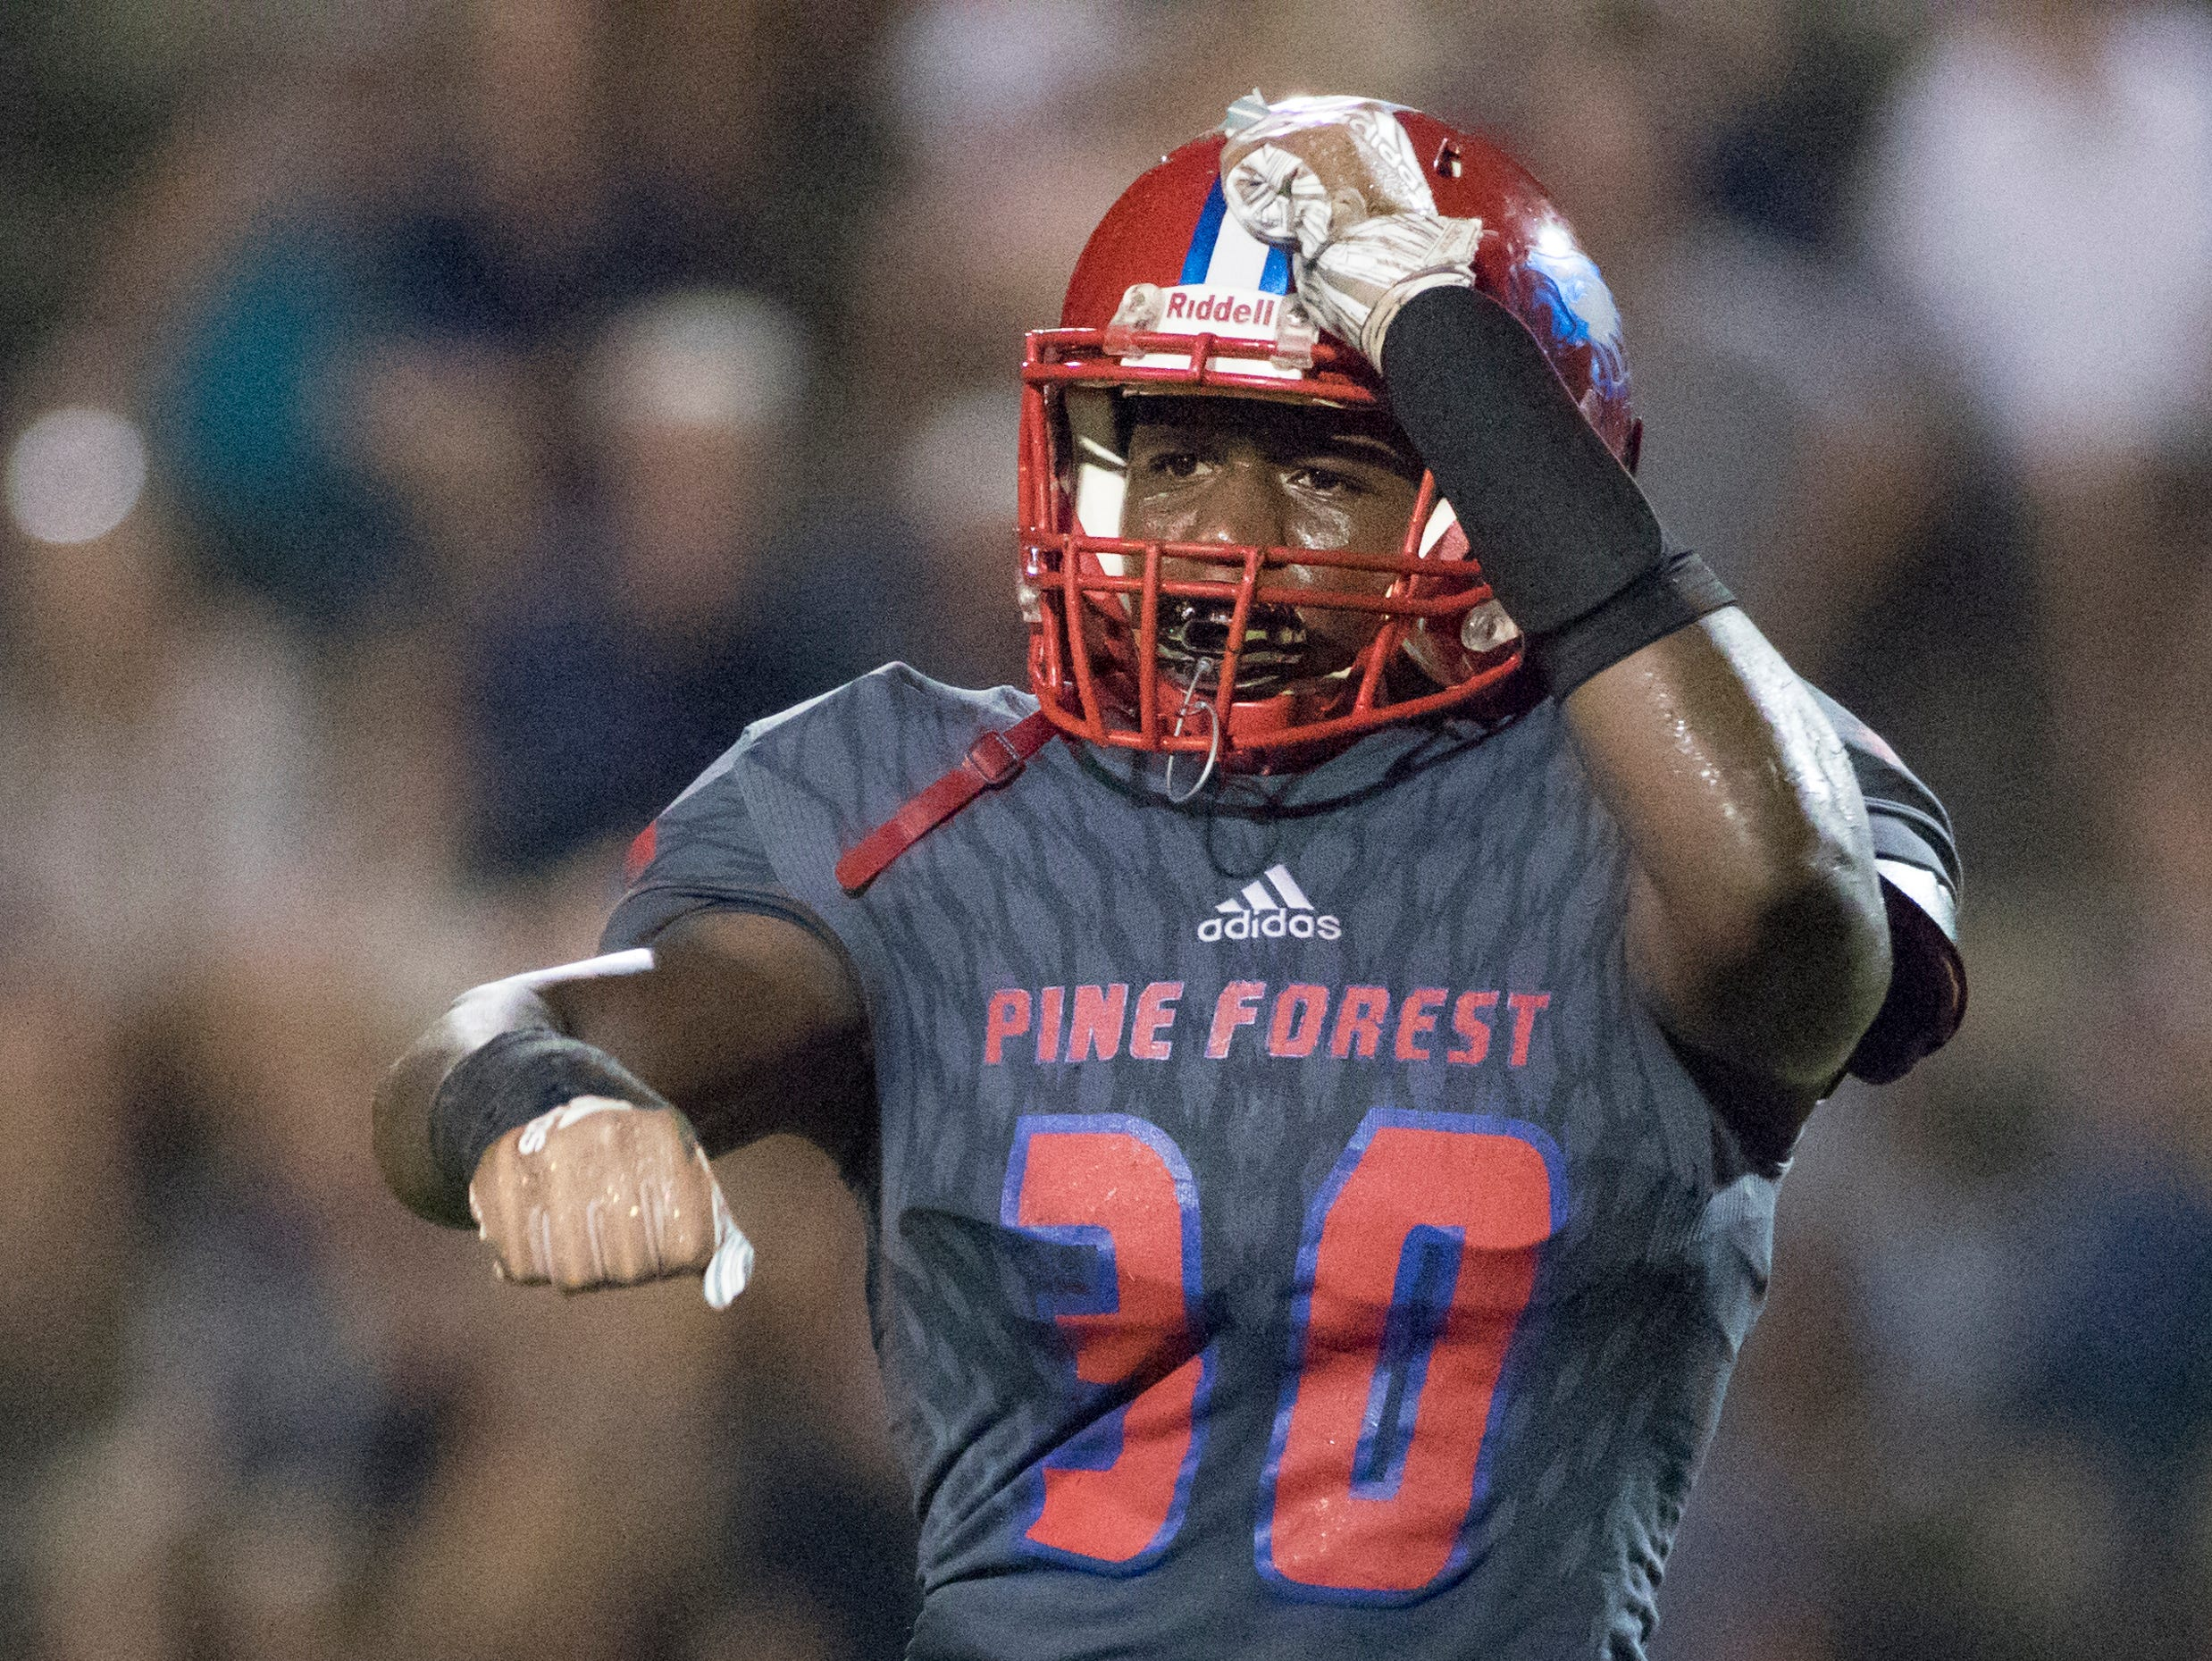 Taajhir Mccall (30) celebrates after sacking the quarterback during the Gulf Breeze vs Pine Forest football game at Pine Forest High School in Pensacola on Friday, September 14, 2018.